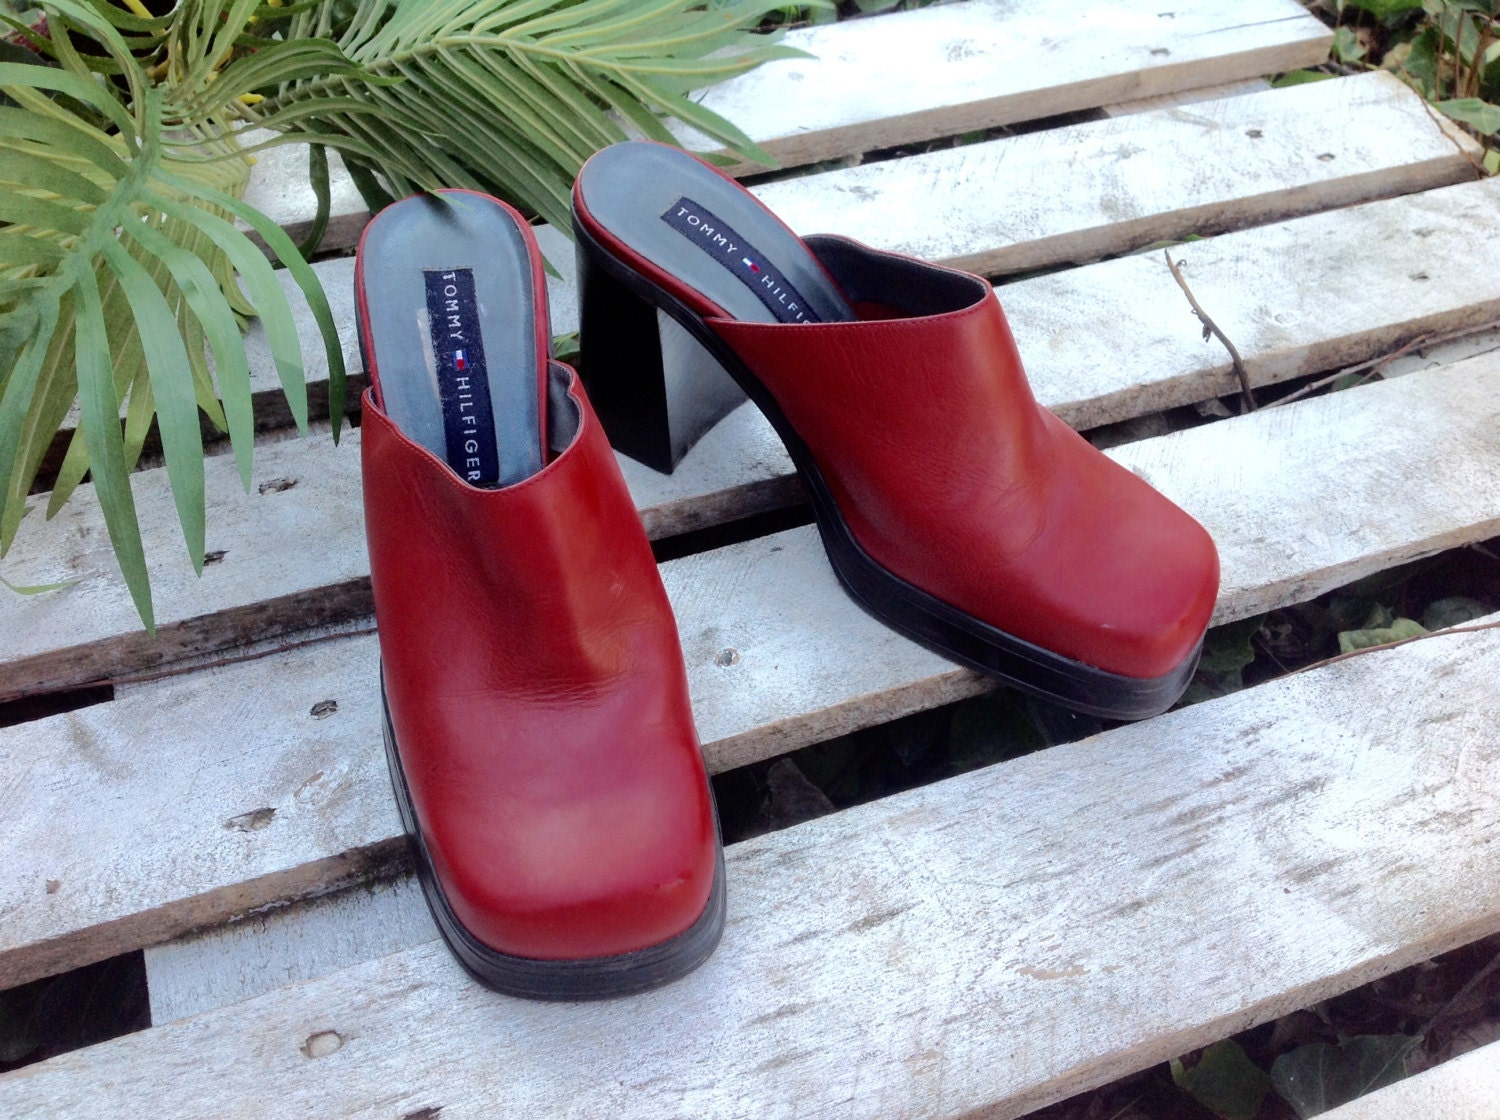 d6fcfa6ced88 Tommy Hilfiger vintage high heelpumpwedgechunky leather